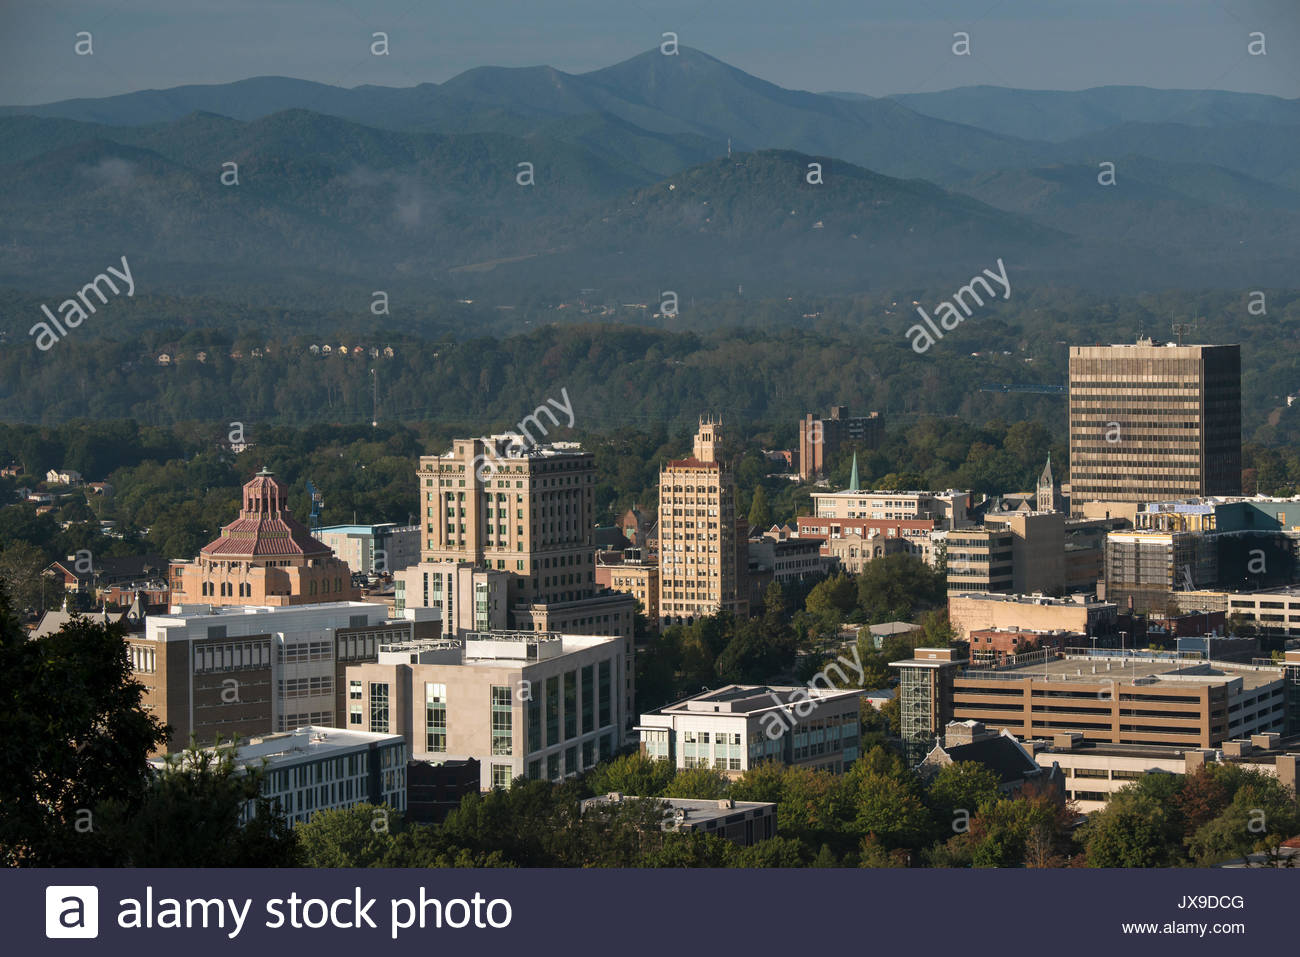 The cityscape of downtown Asheville, North Carolina. - Stock Image